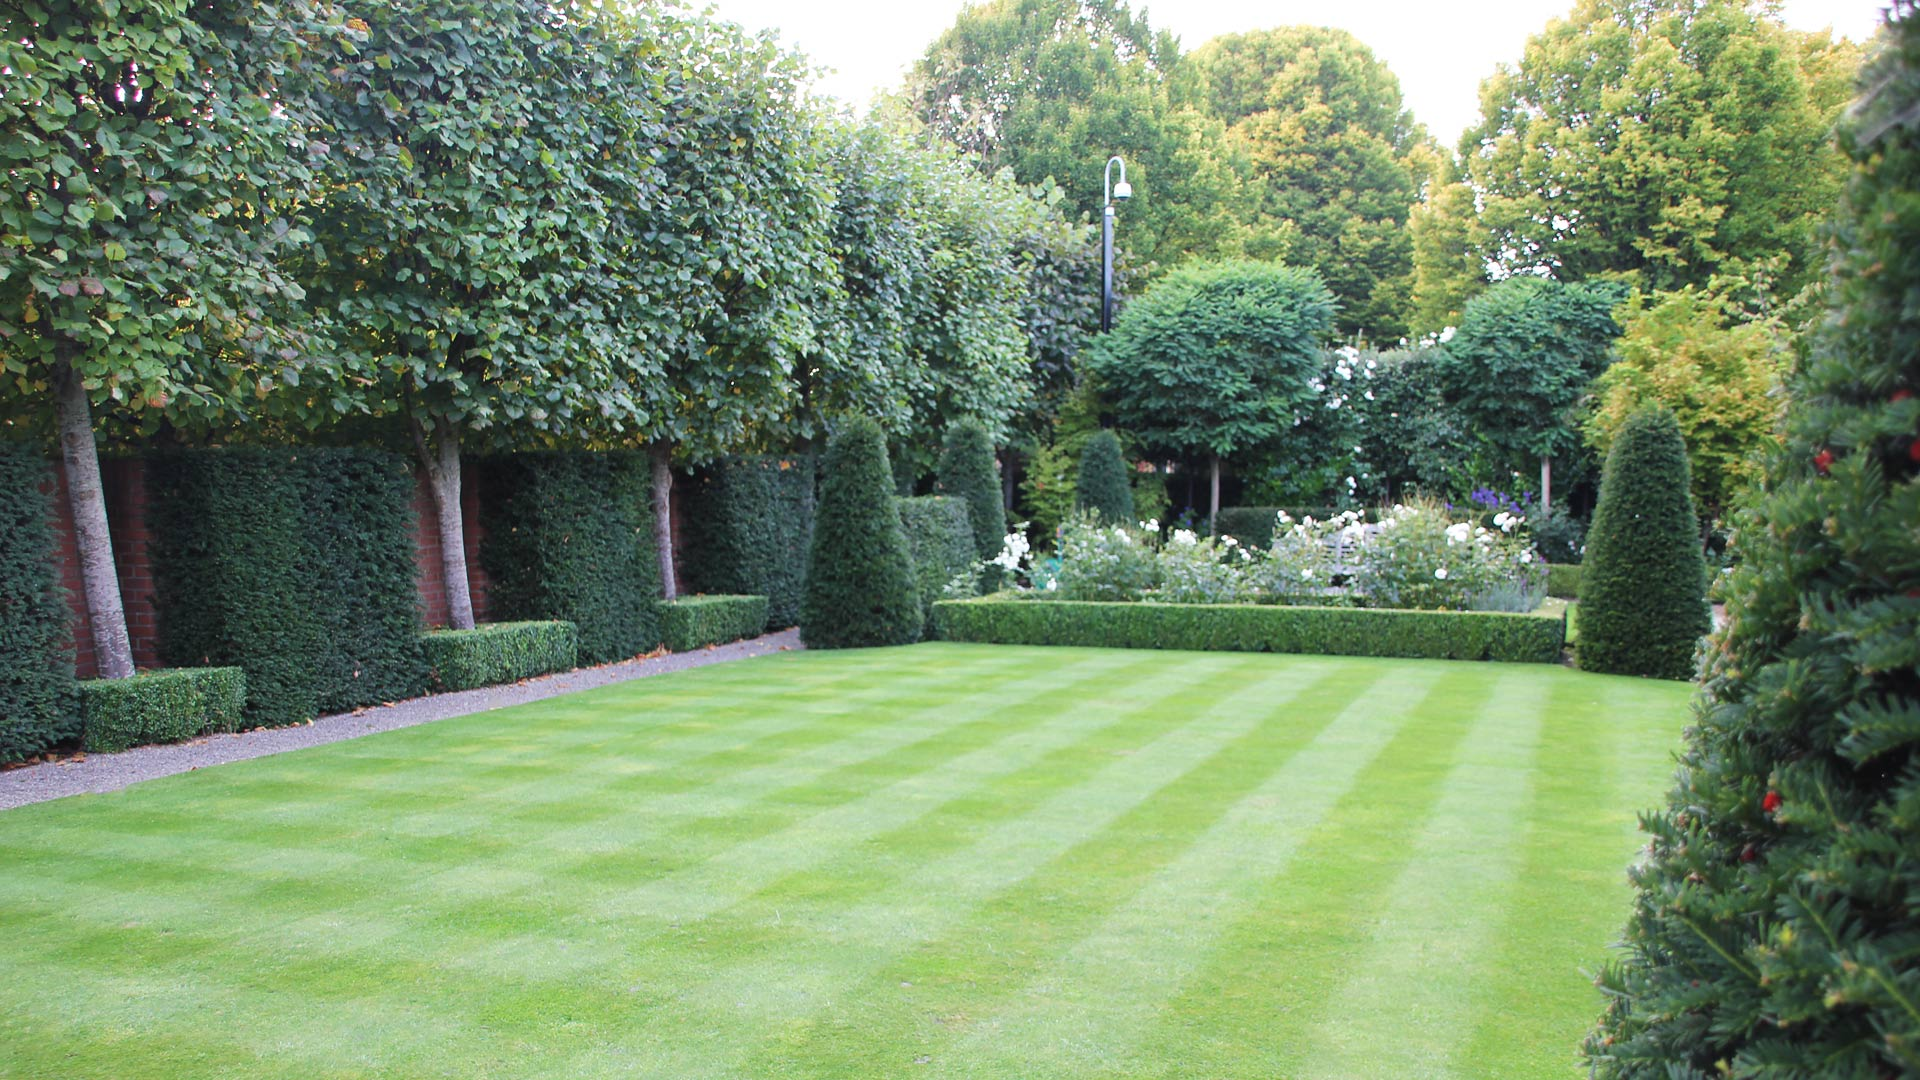 Lawn care service damian costello garden design for Garden renovation ideas